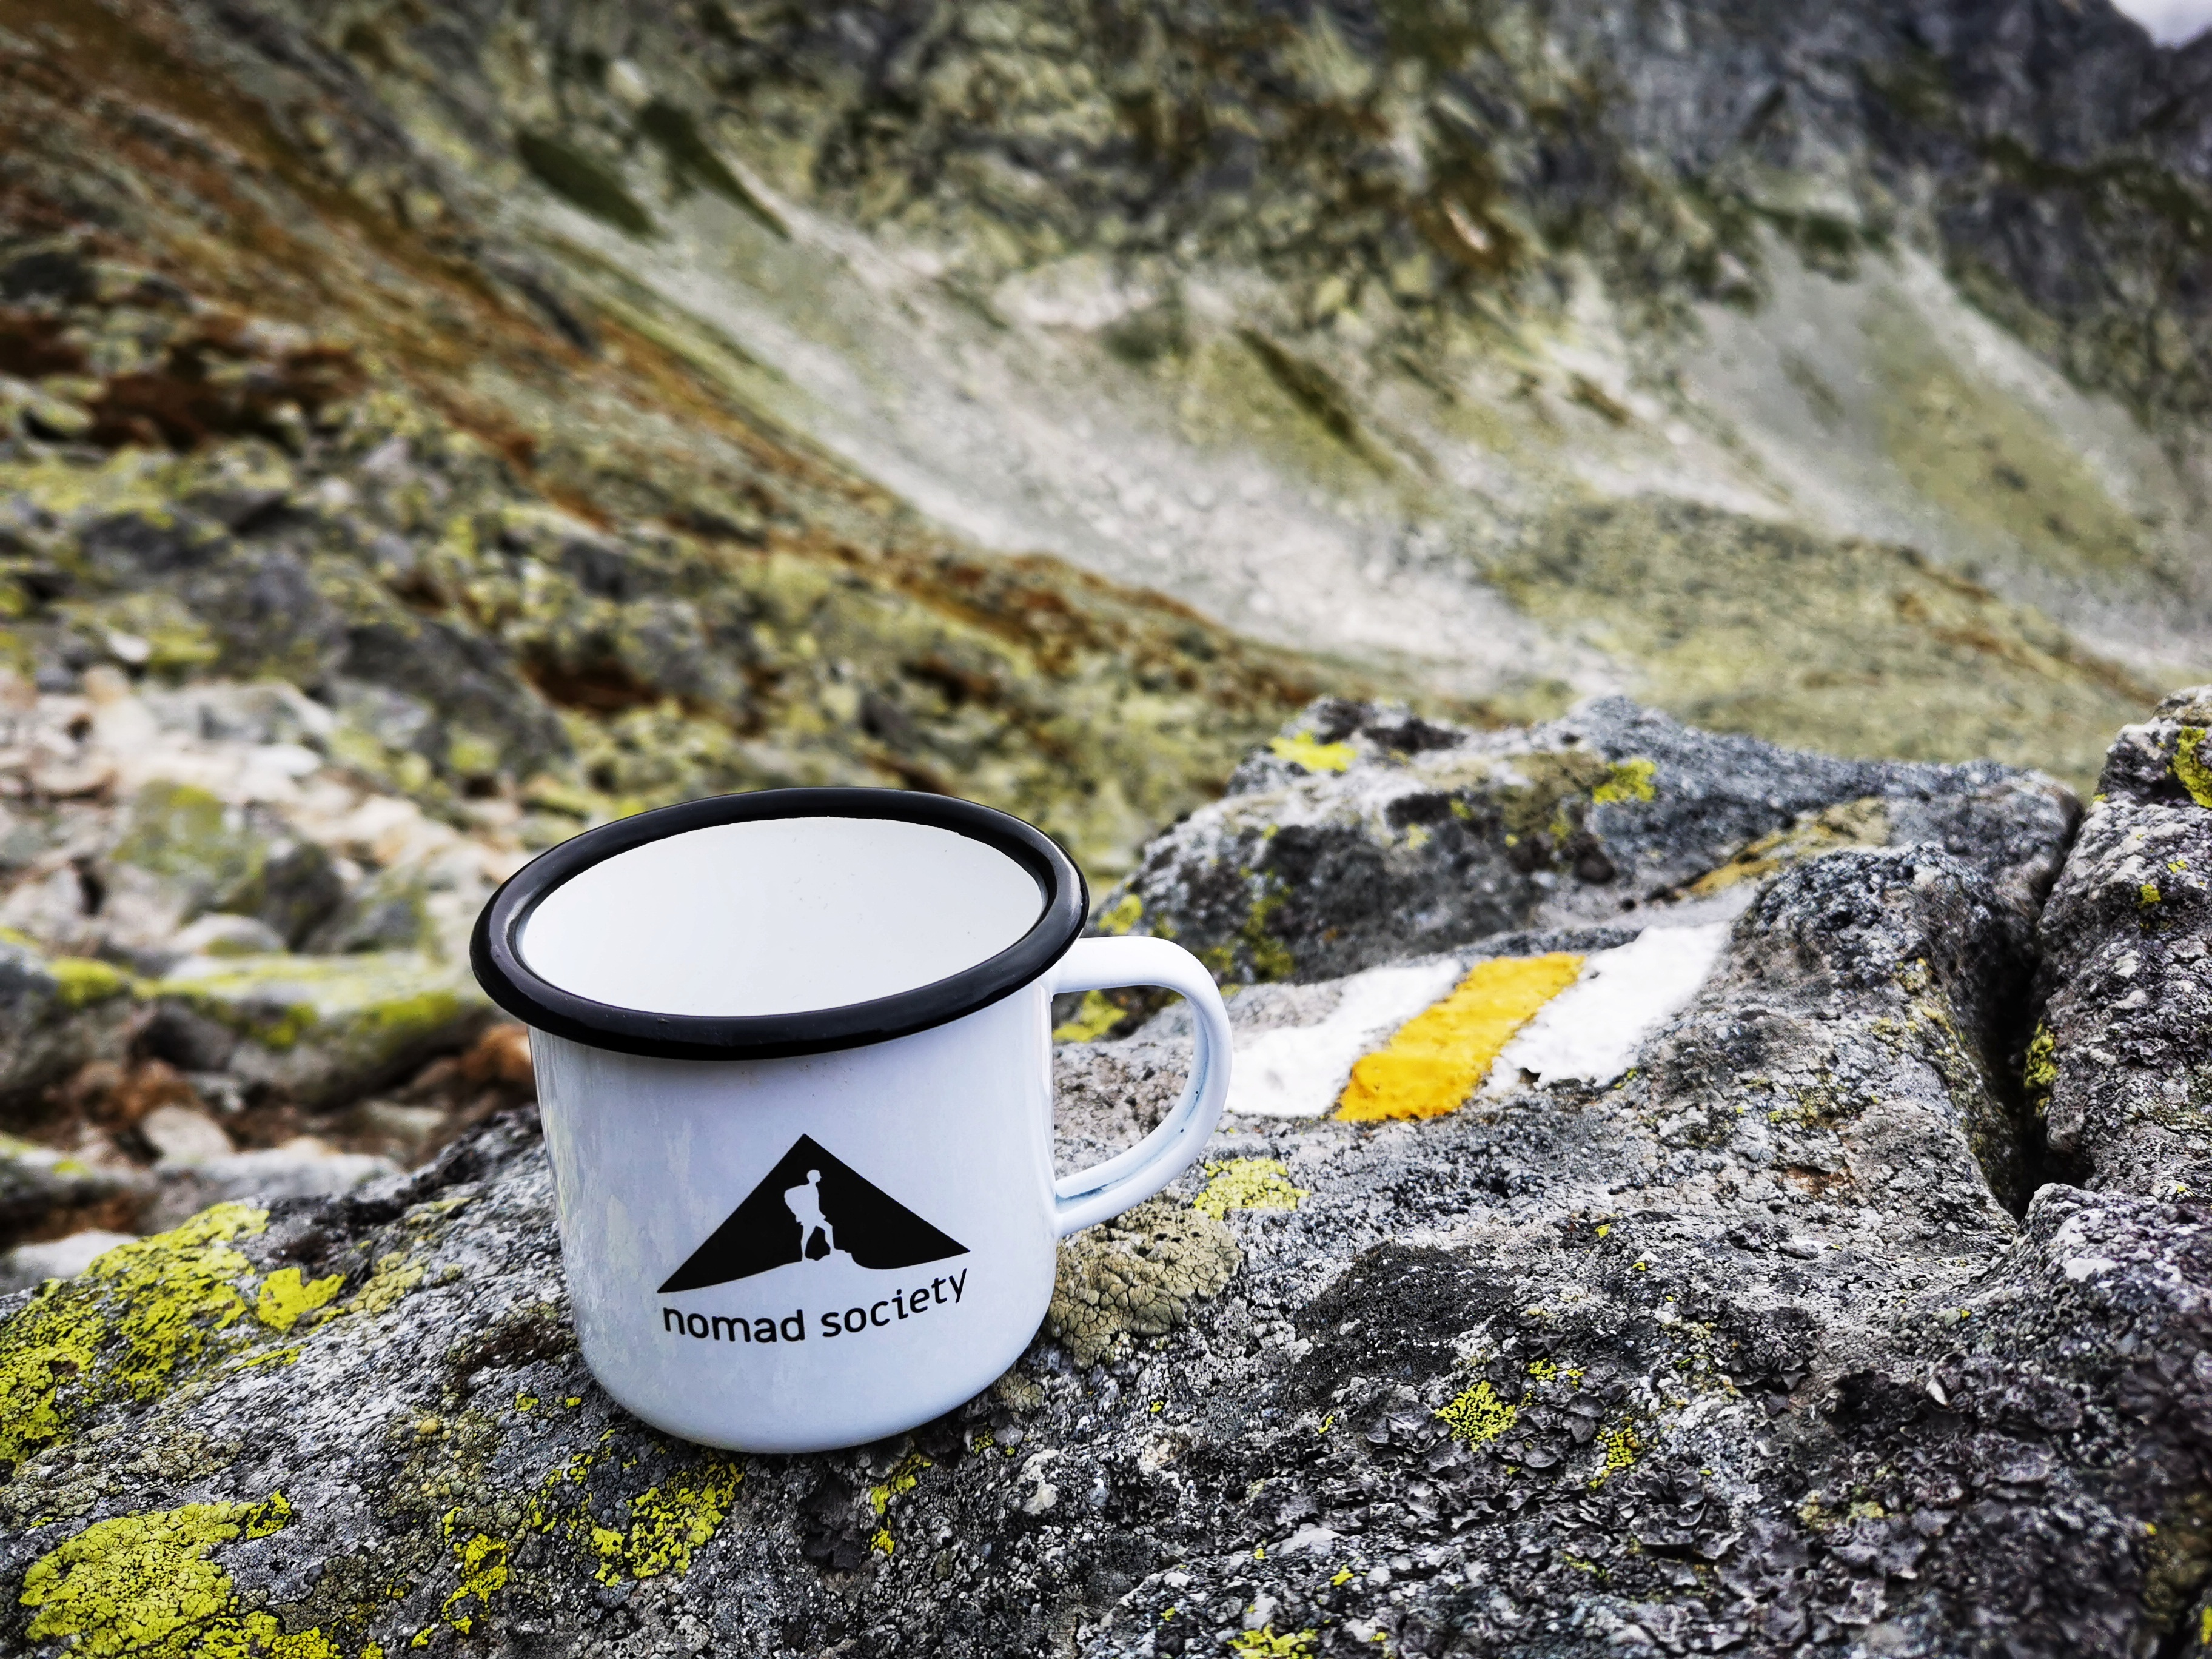 Nomad Society Mug is a great pick for any backpacking and camping adventure, hiking or canoeing trip or just everyday use in the office. You can get one here: https://nomadsociety.cz/shop/.